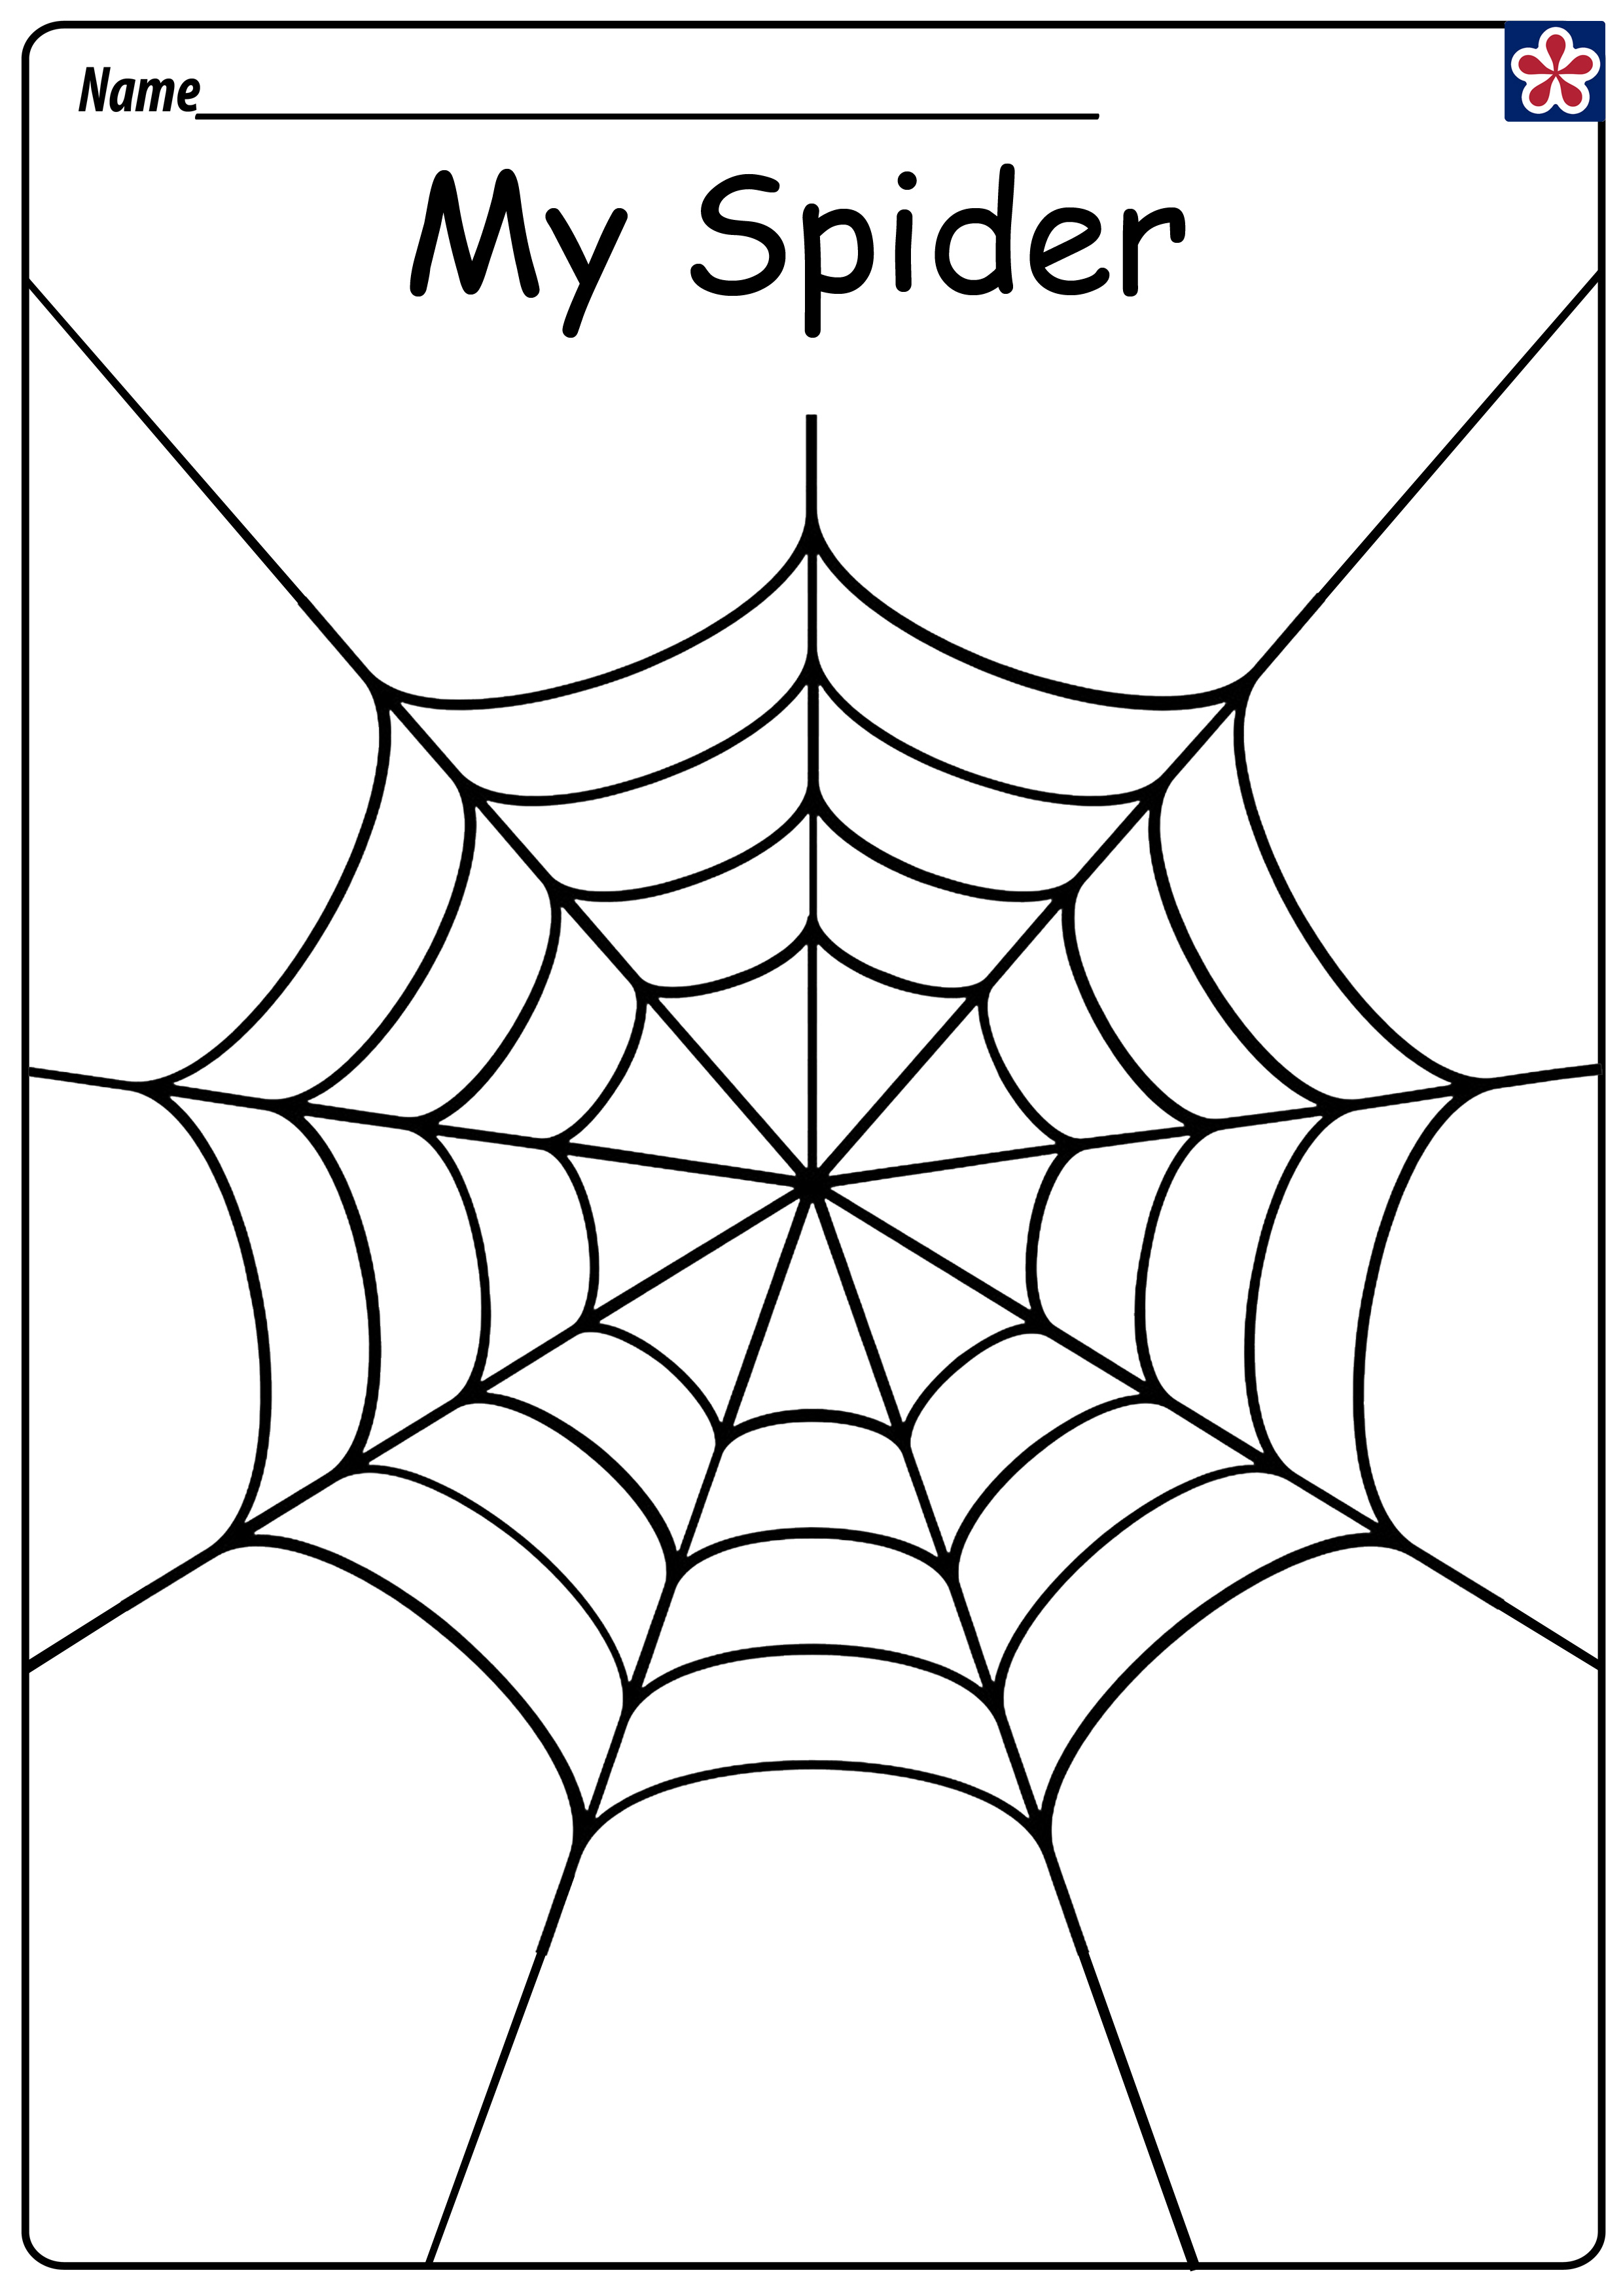 10 Simple Spider Crafts For Preschoolers